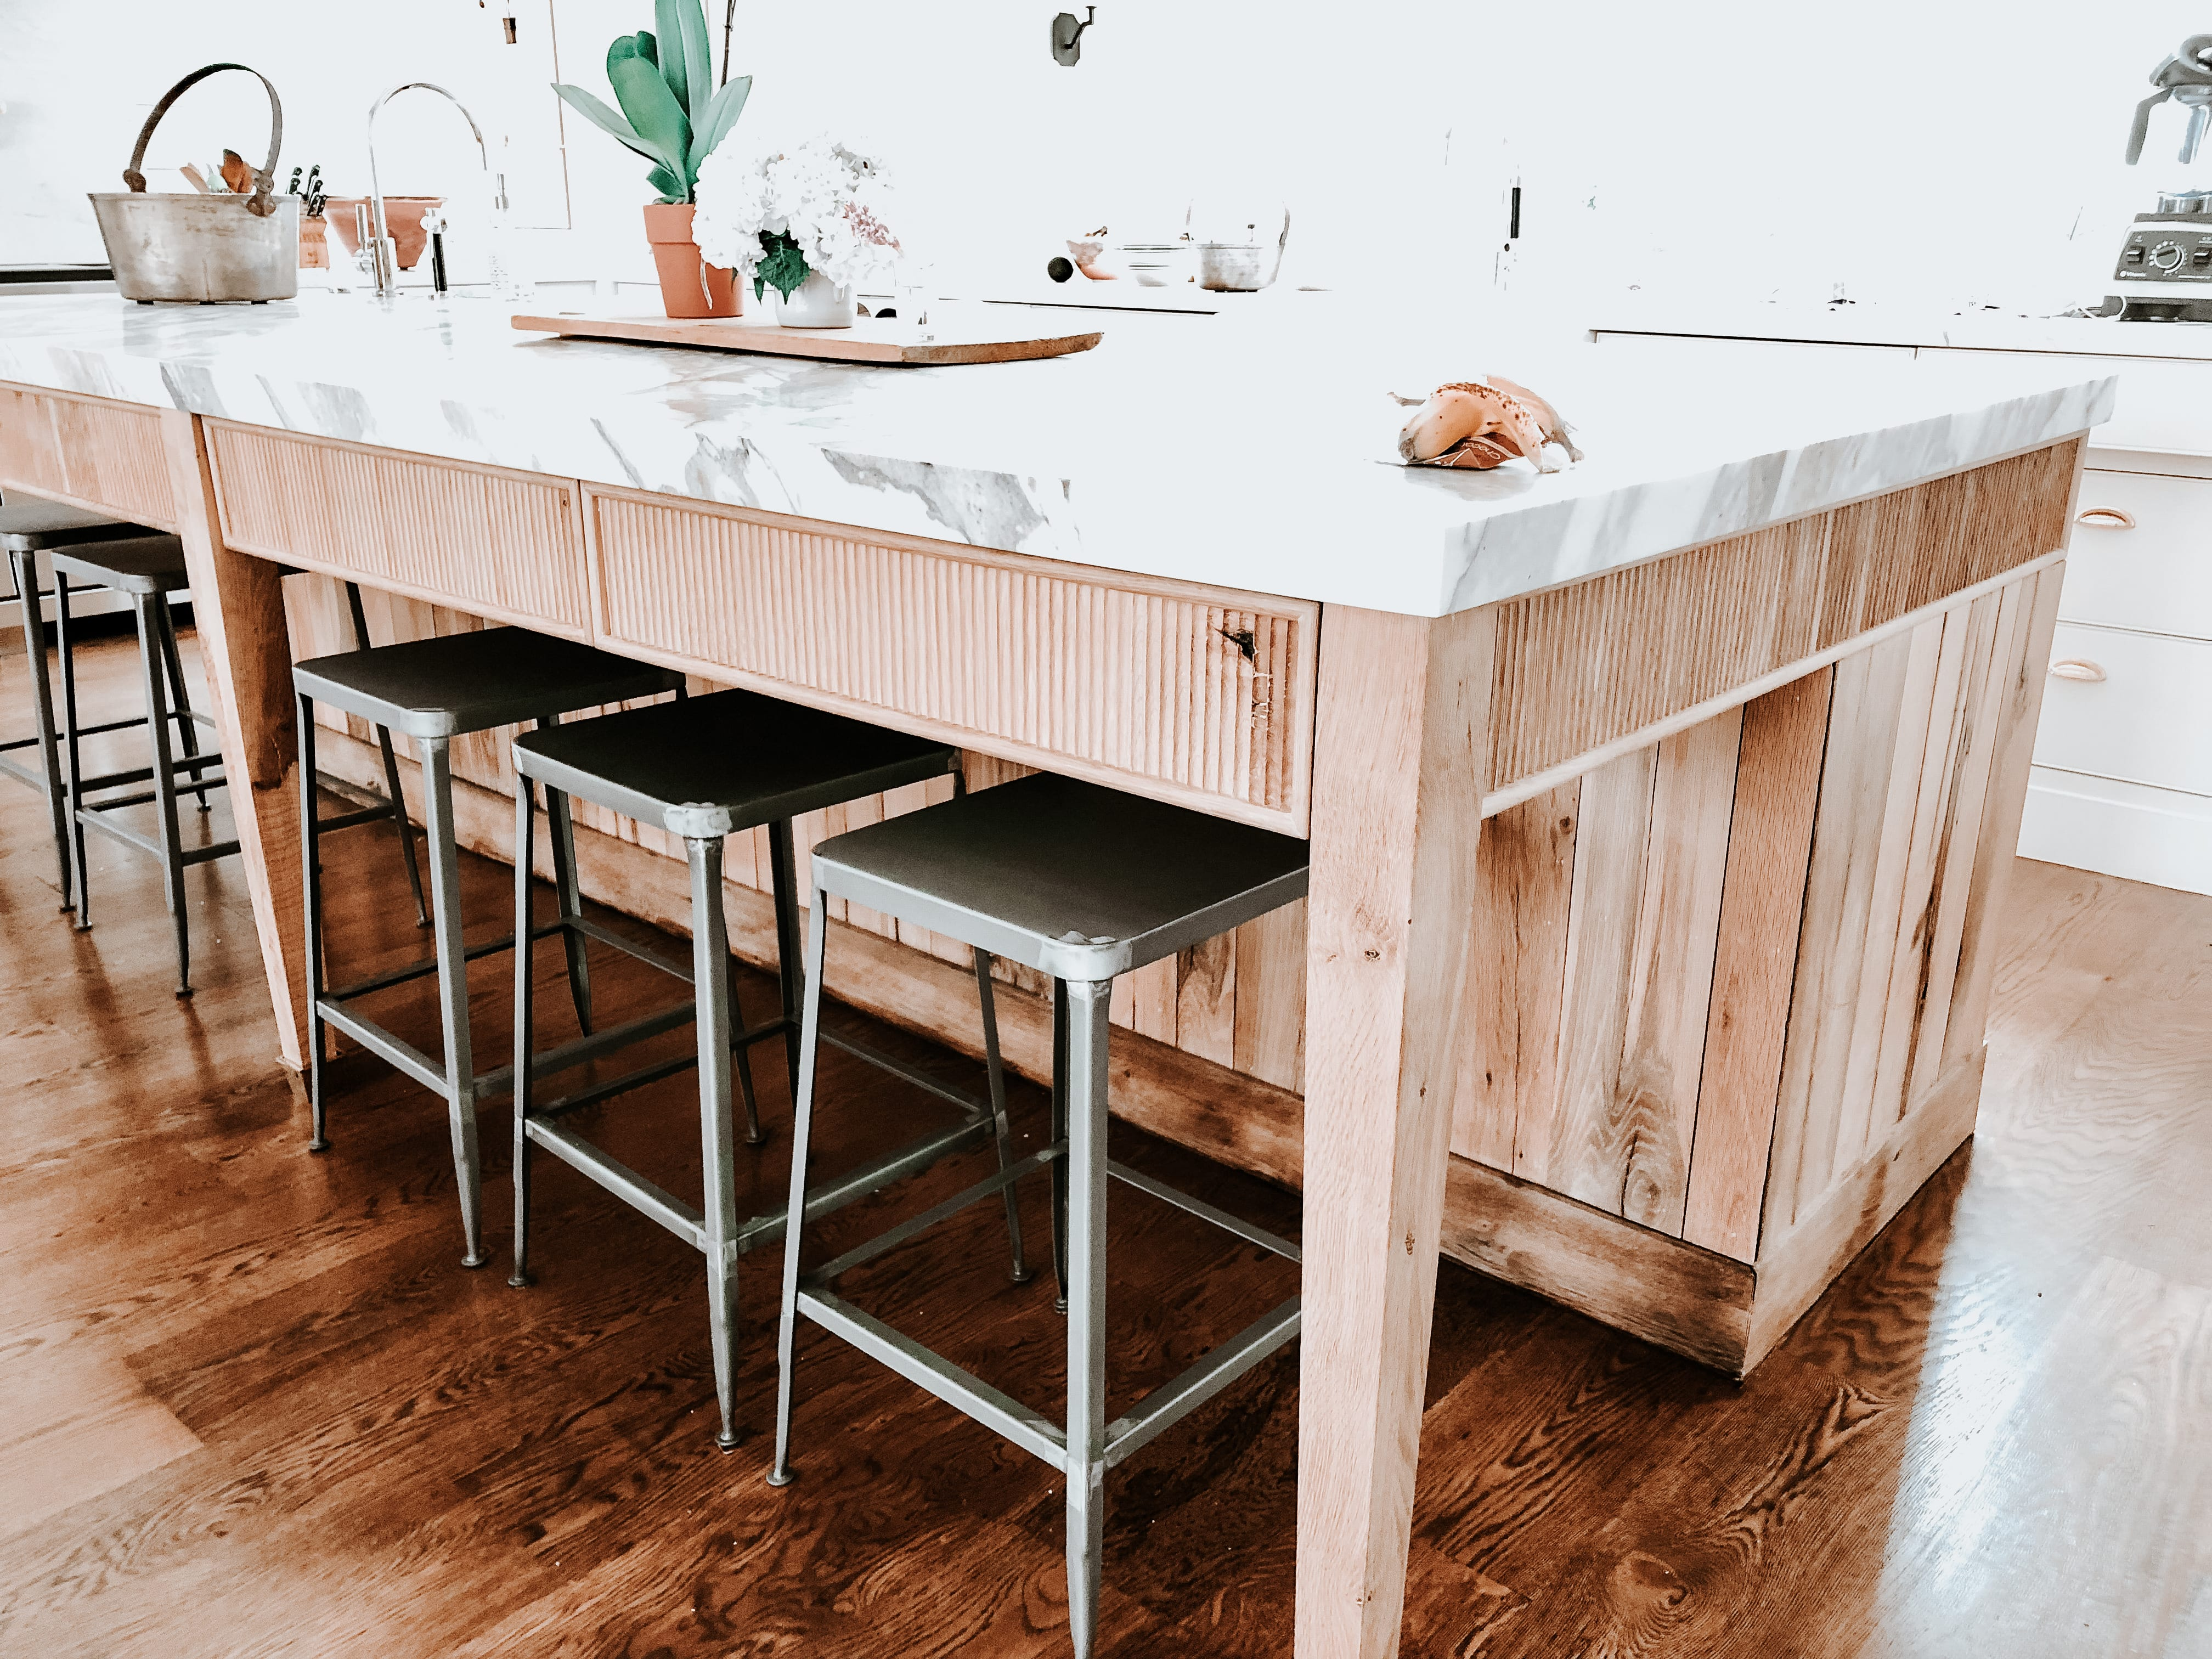 Fluted Wooden Cabinets with white marble countertops